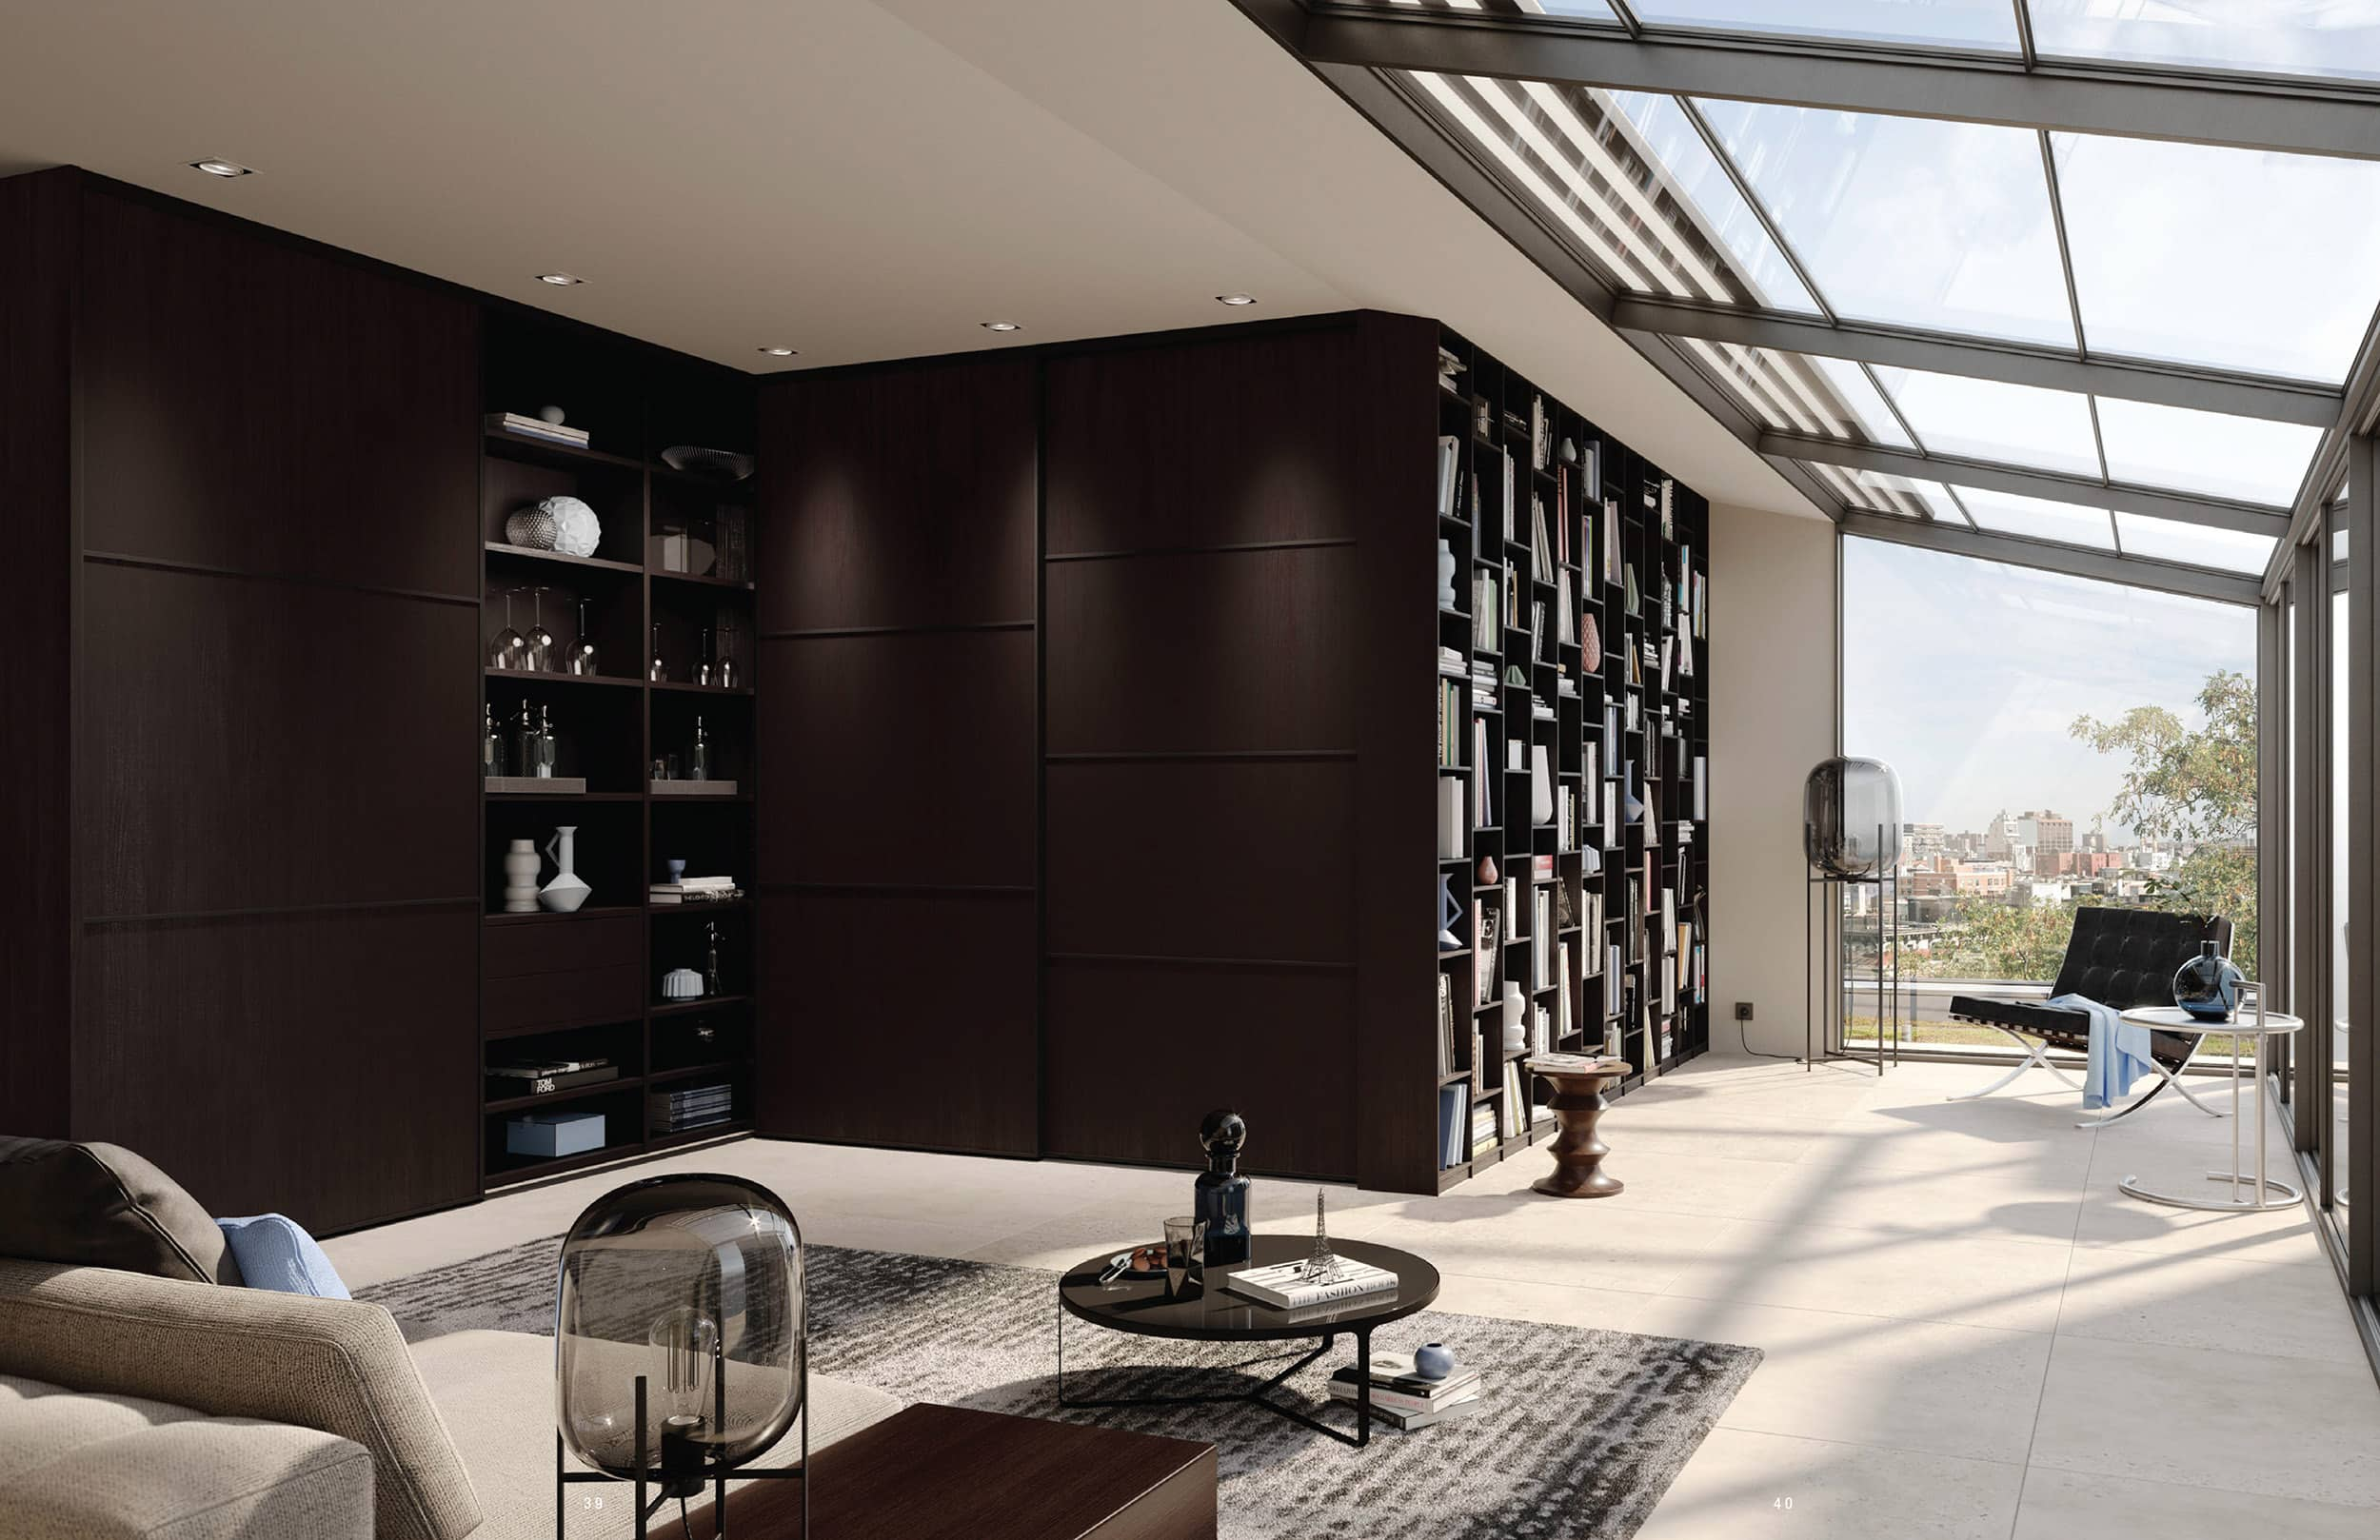 These wall systems by BauCloset deliver integrated storage that is better than freestanding shelves.